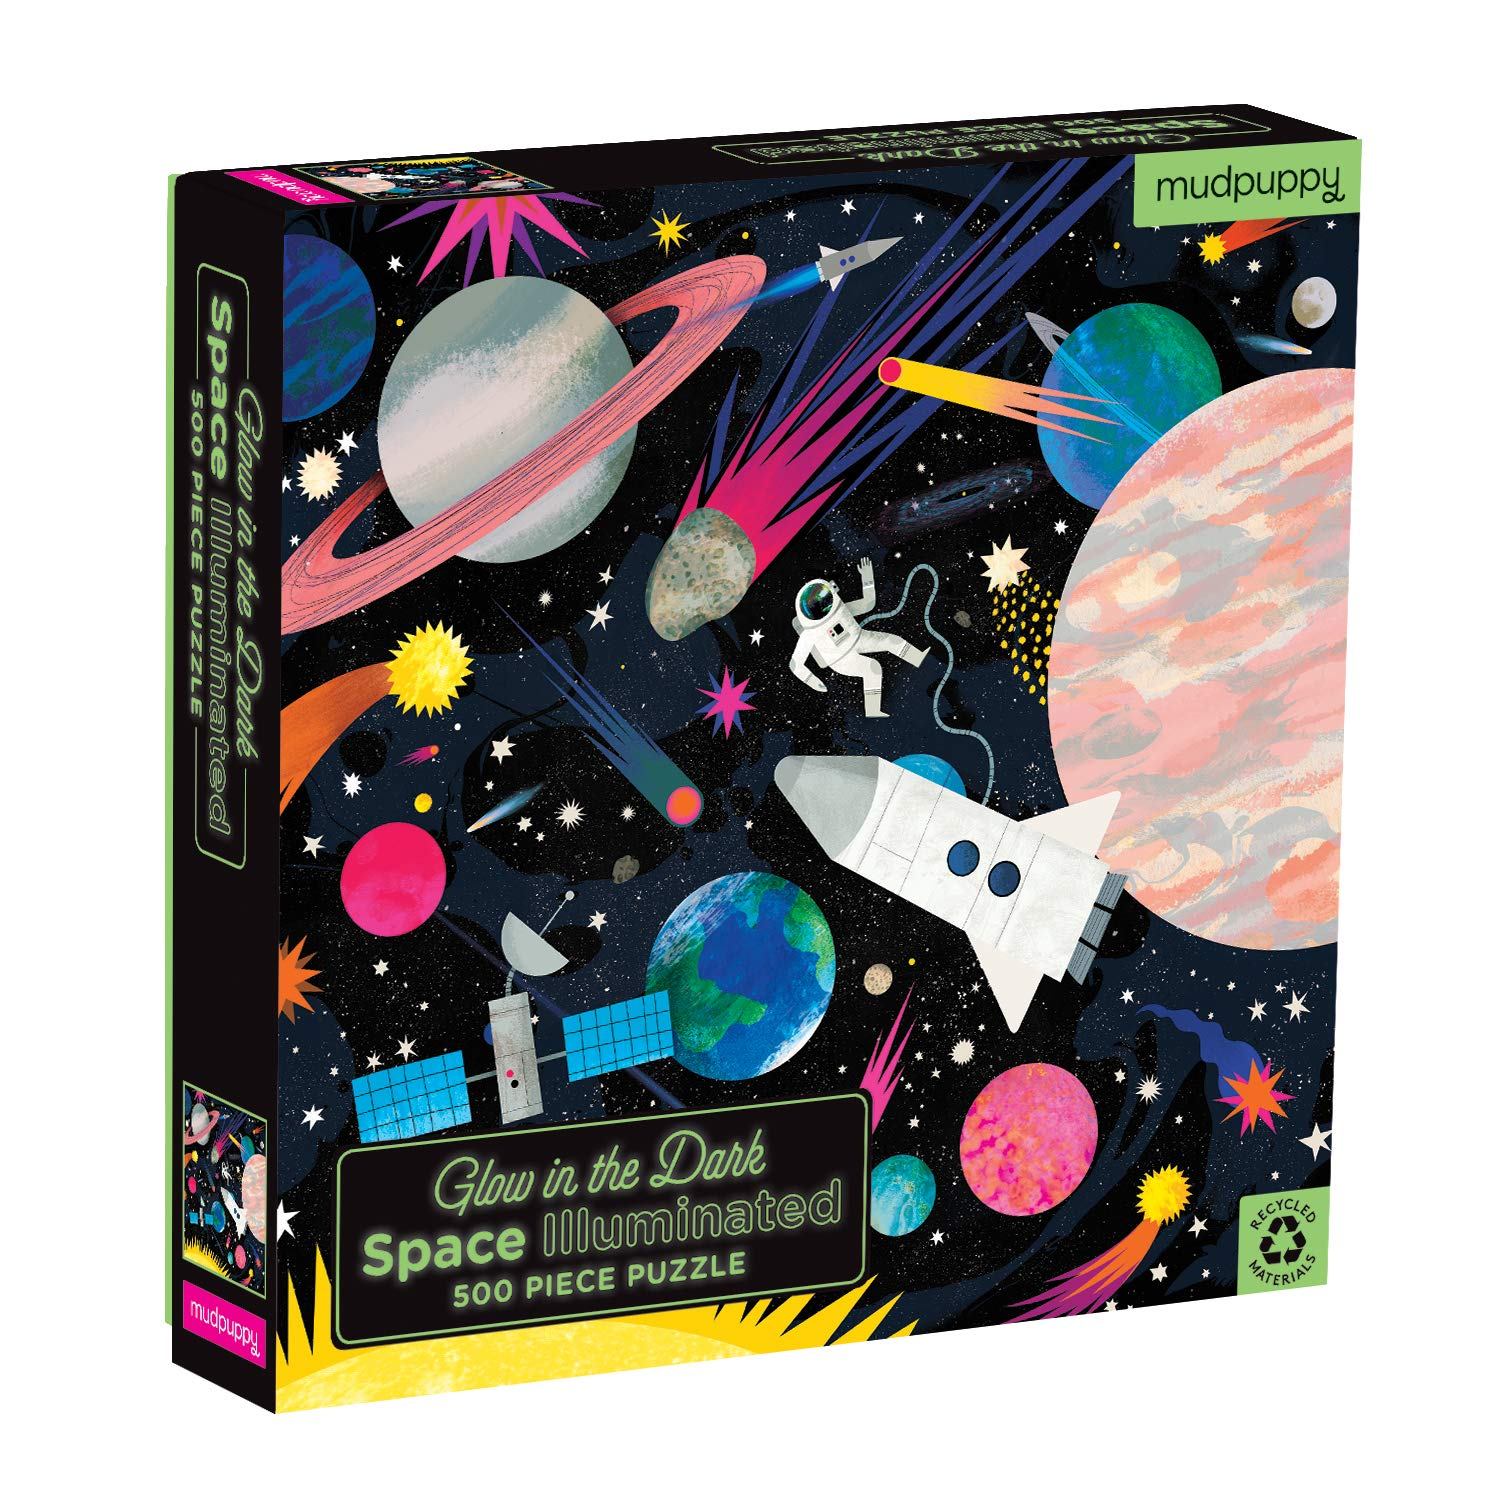 Mudpuppy Space Illuminated 500 Piece Glow in The Dark Jigsaw Puzzle for Kids and Families, Family Puzzle with Glow in The Dark Space Theme